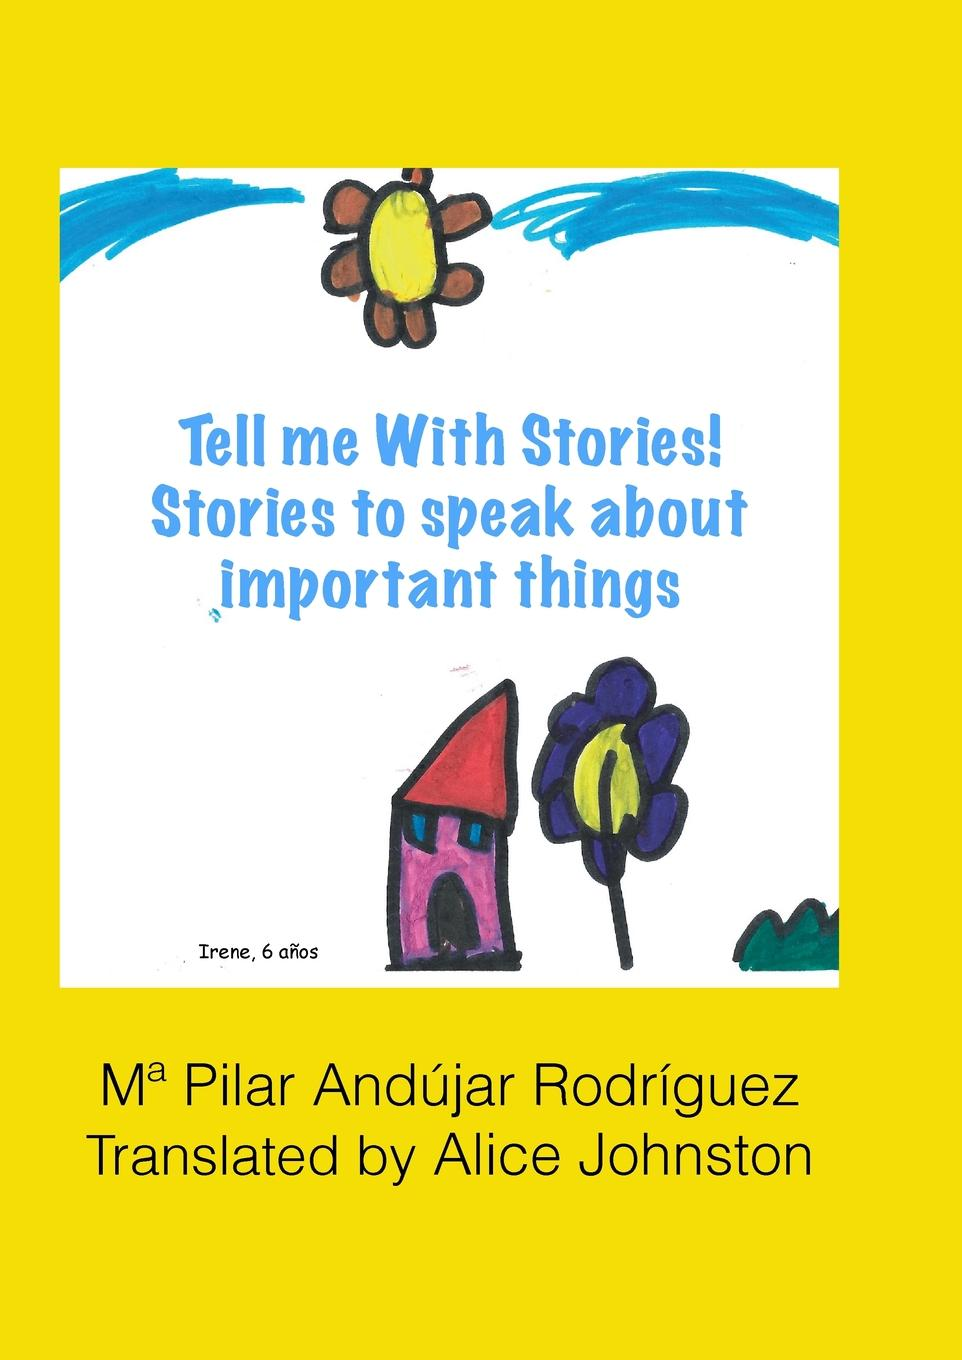 Tell me with stories. Stories for telling important things